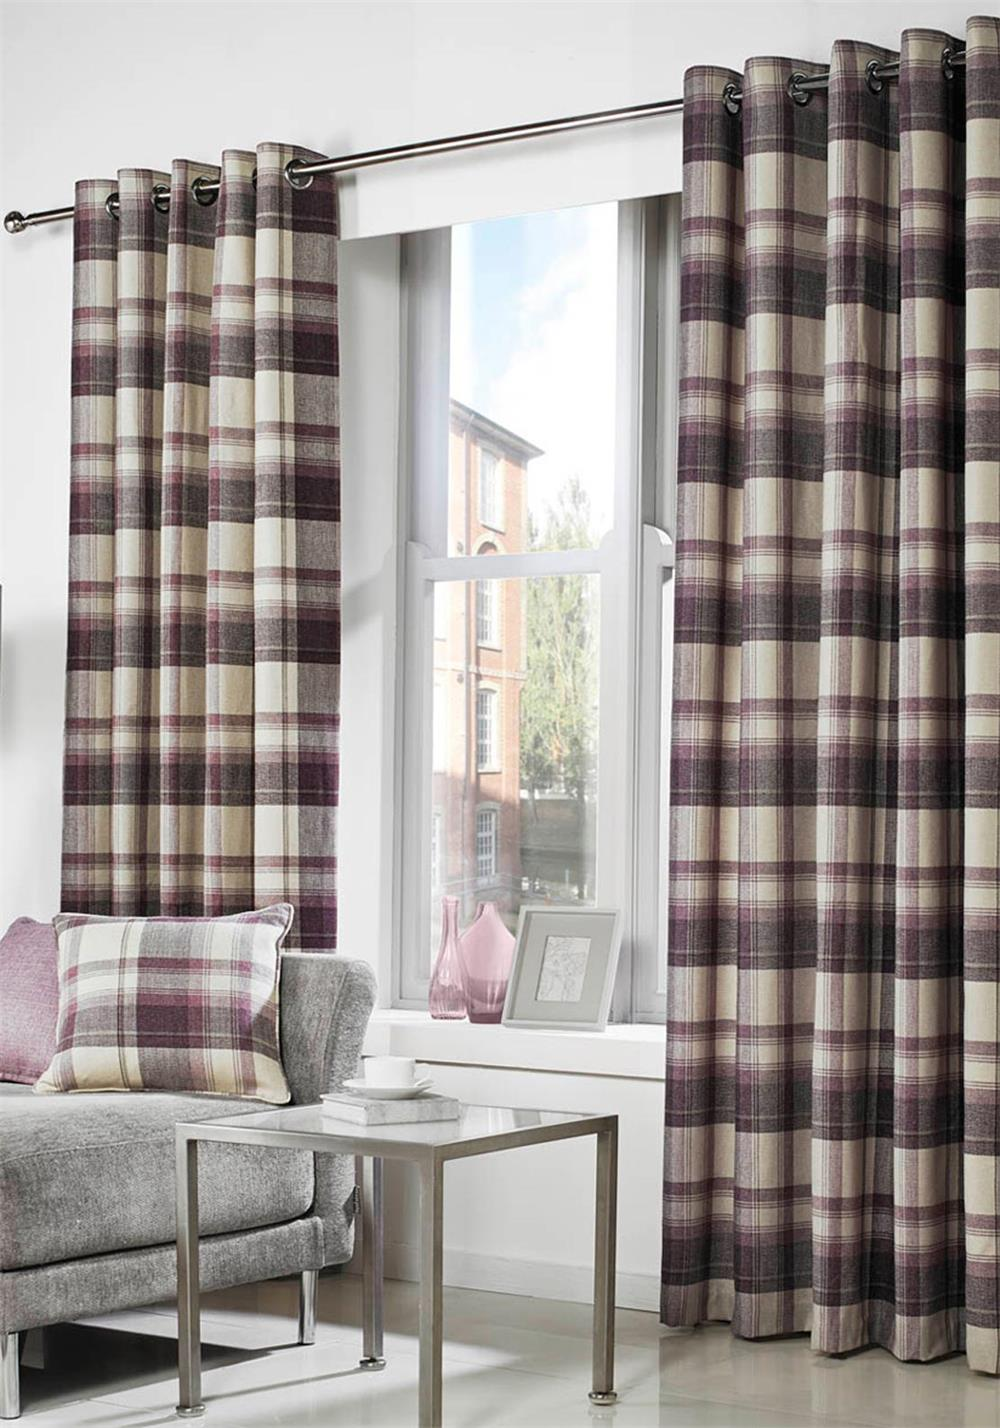 Curtina Belvedere Readymade Luxury Eyelet Curtains Fully Lined, Plum Check